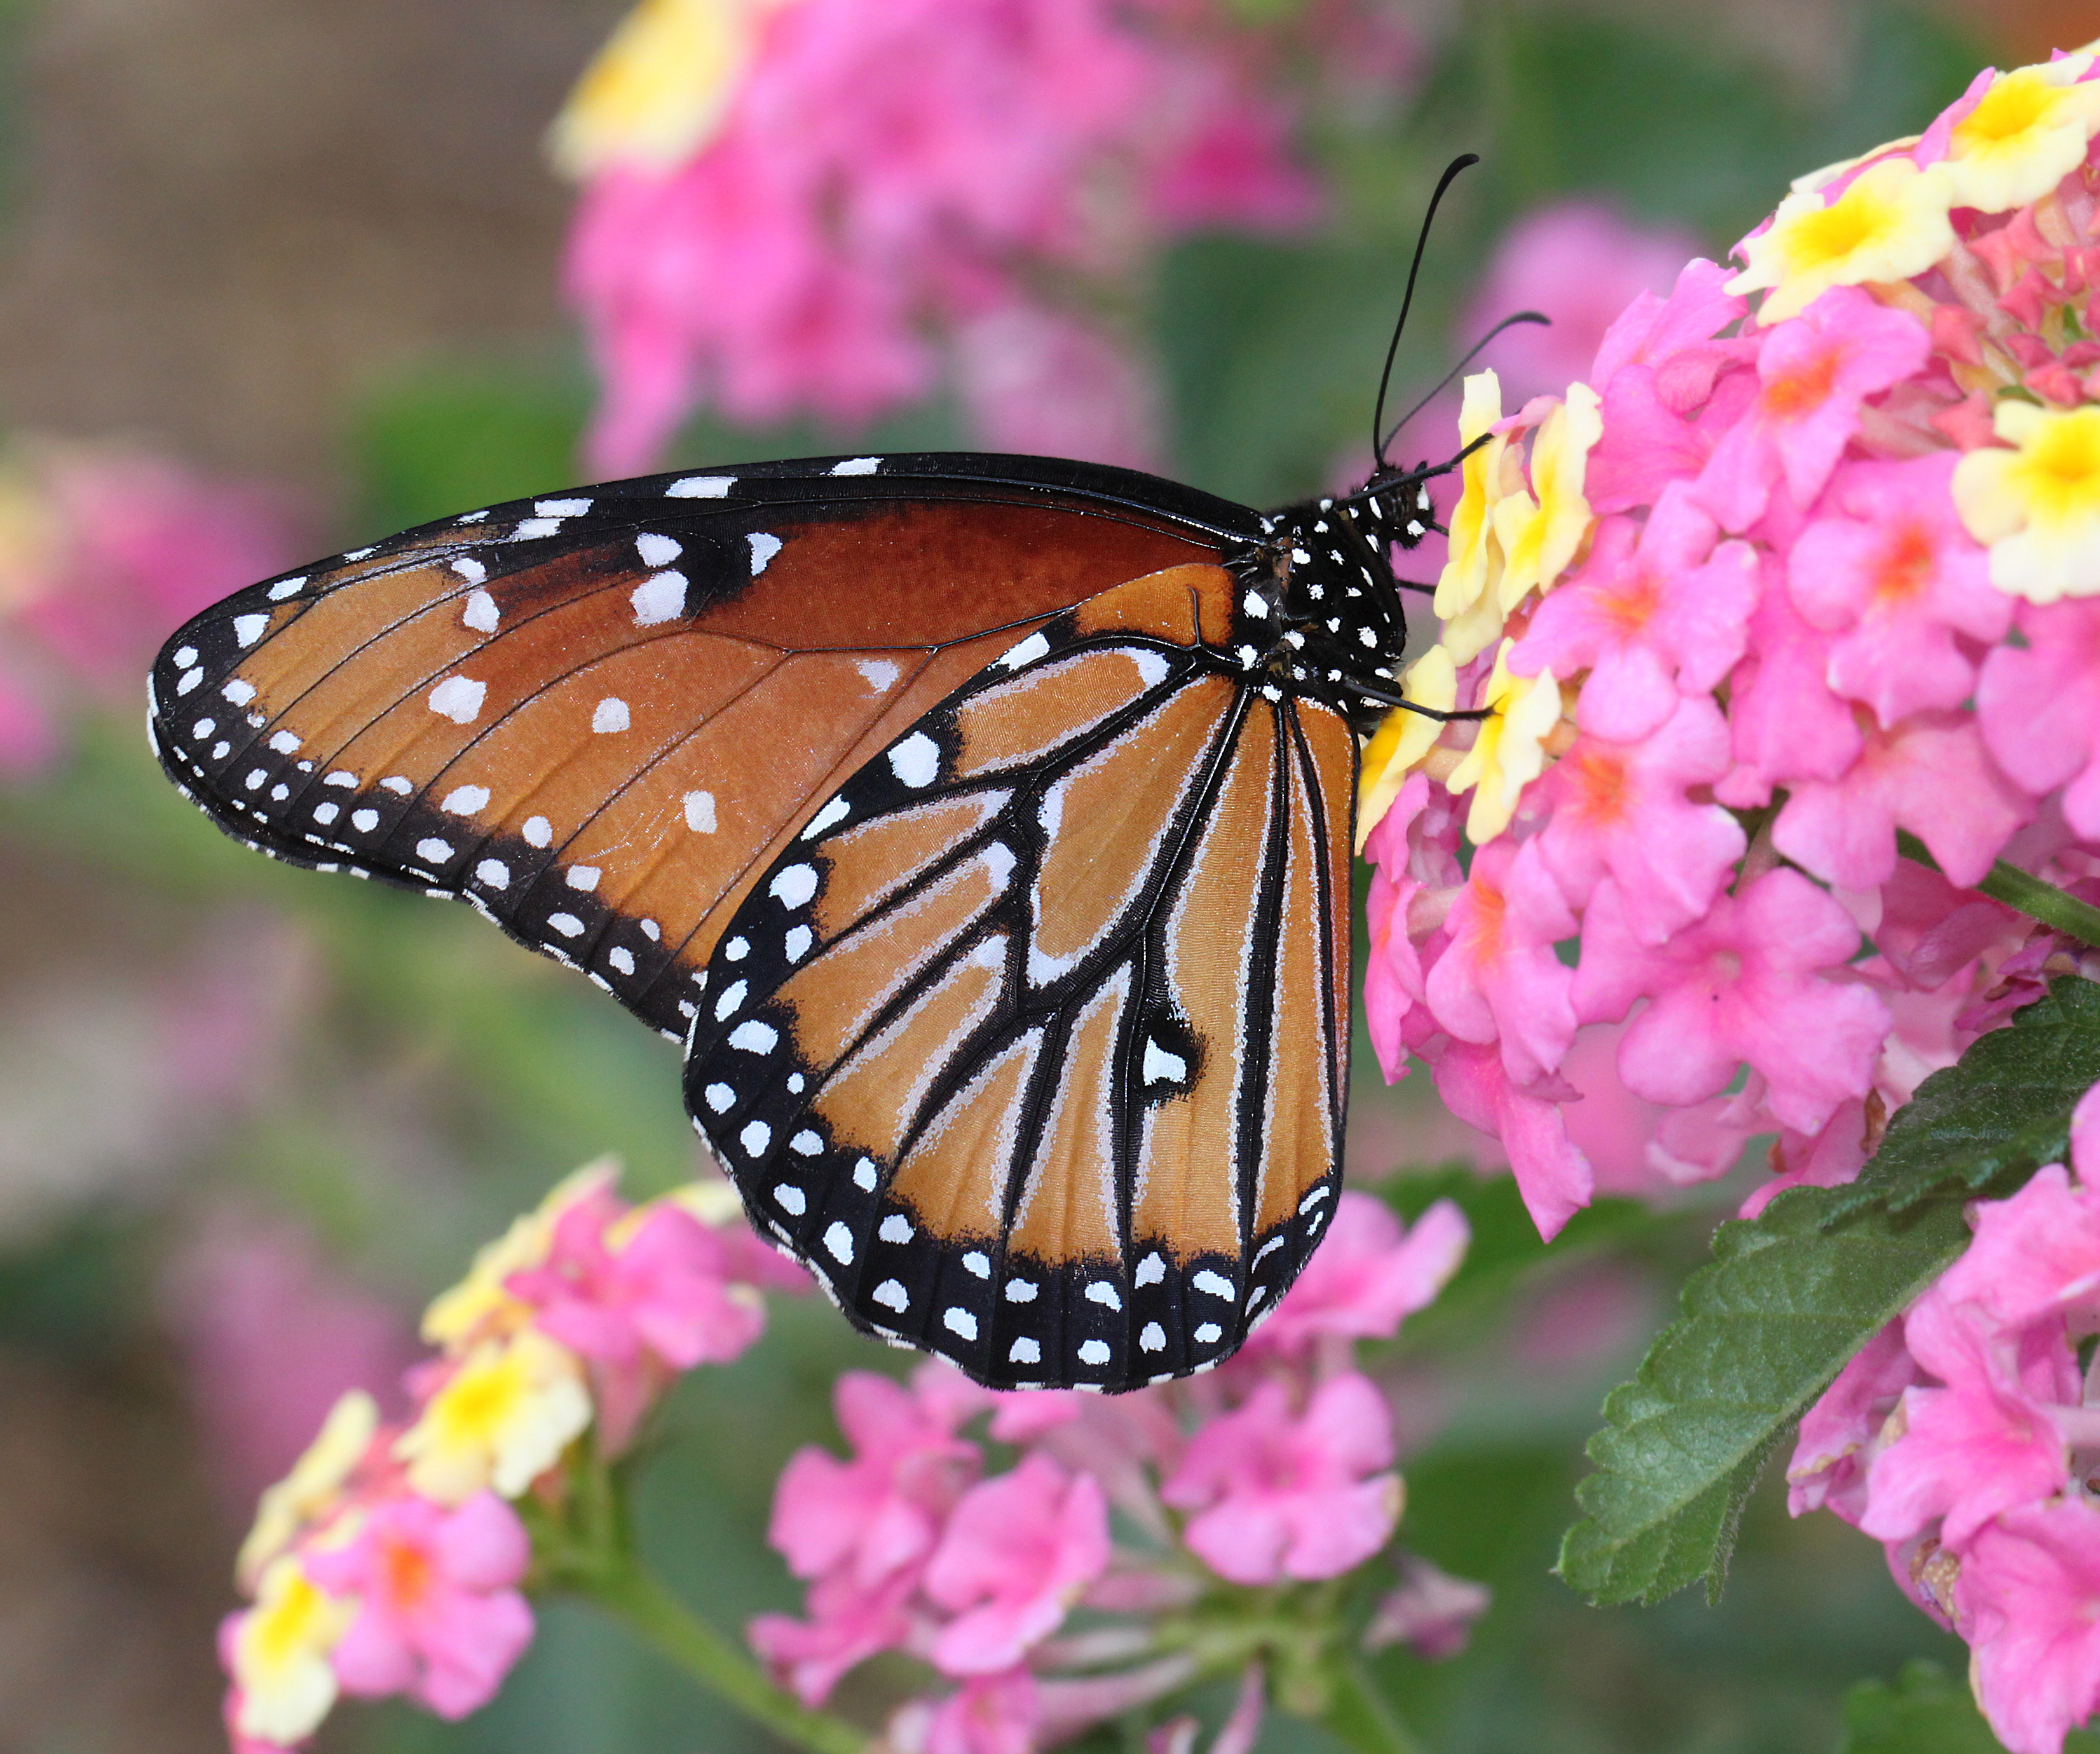 QUEEN (Danaus gilippus) (10-1-11) harshaw rd, scc, az -01, Animal, Bright, Butterfly, Insect, HQ Photo